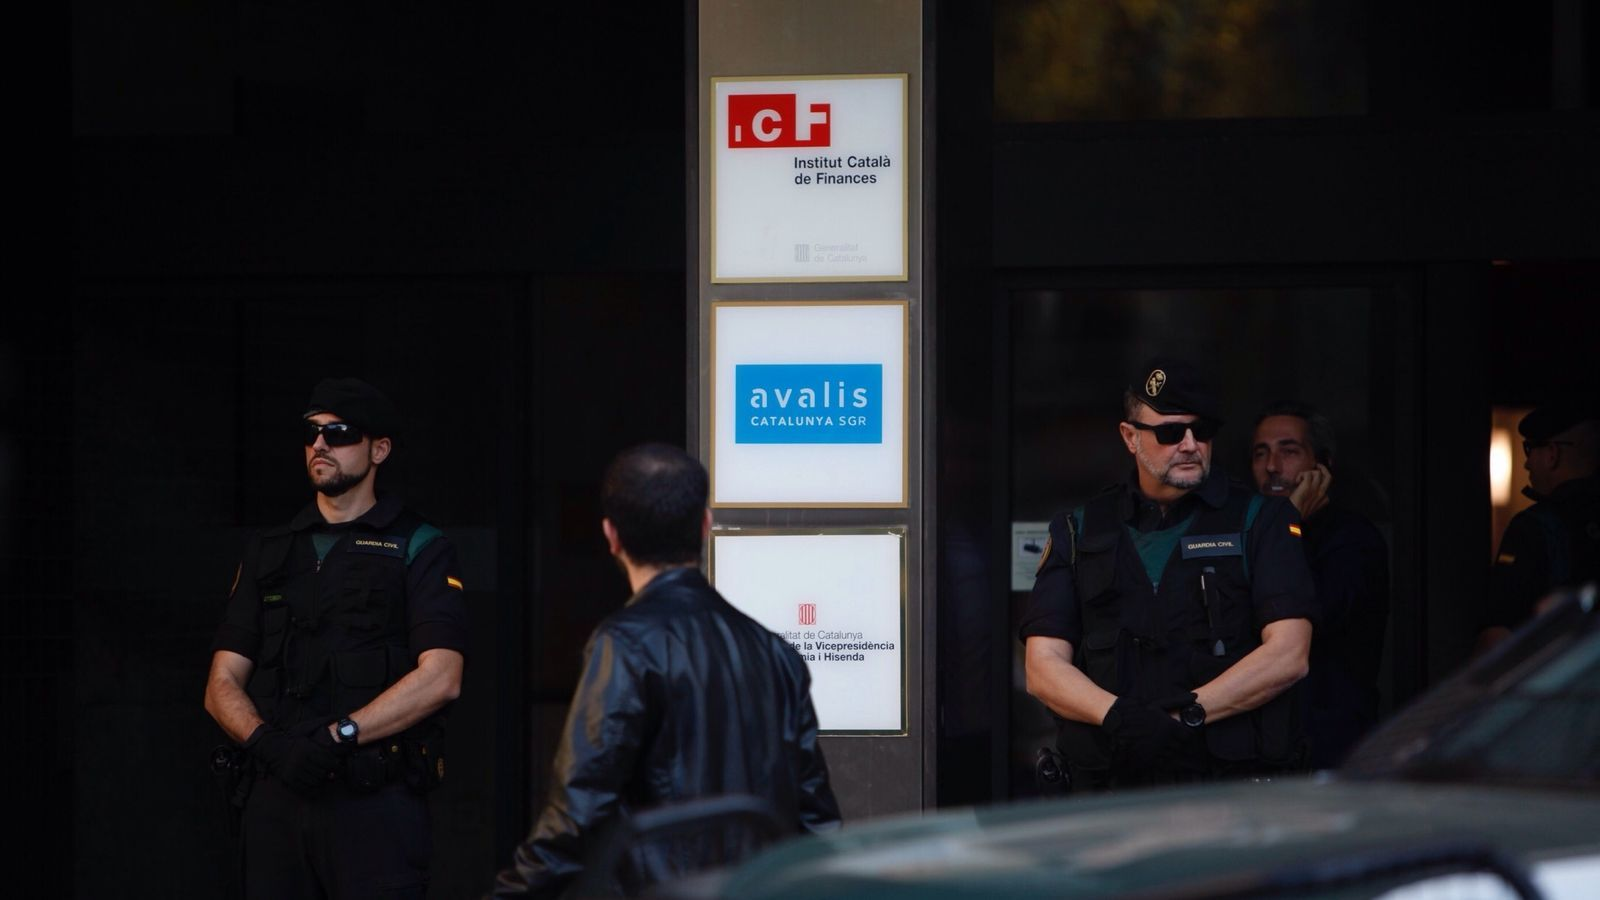 Agents de la Guàrdia Civil a l'entrada de l'Institut Català de Finances